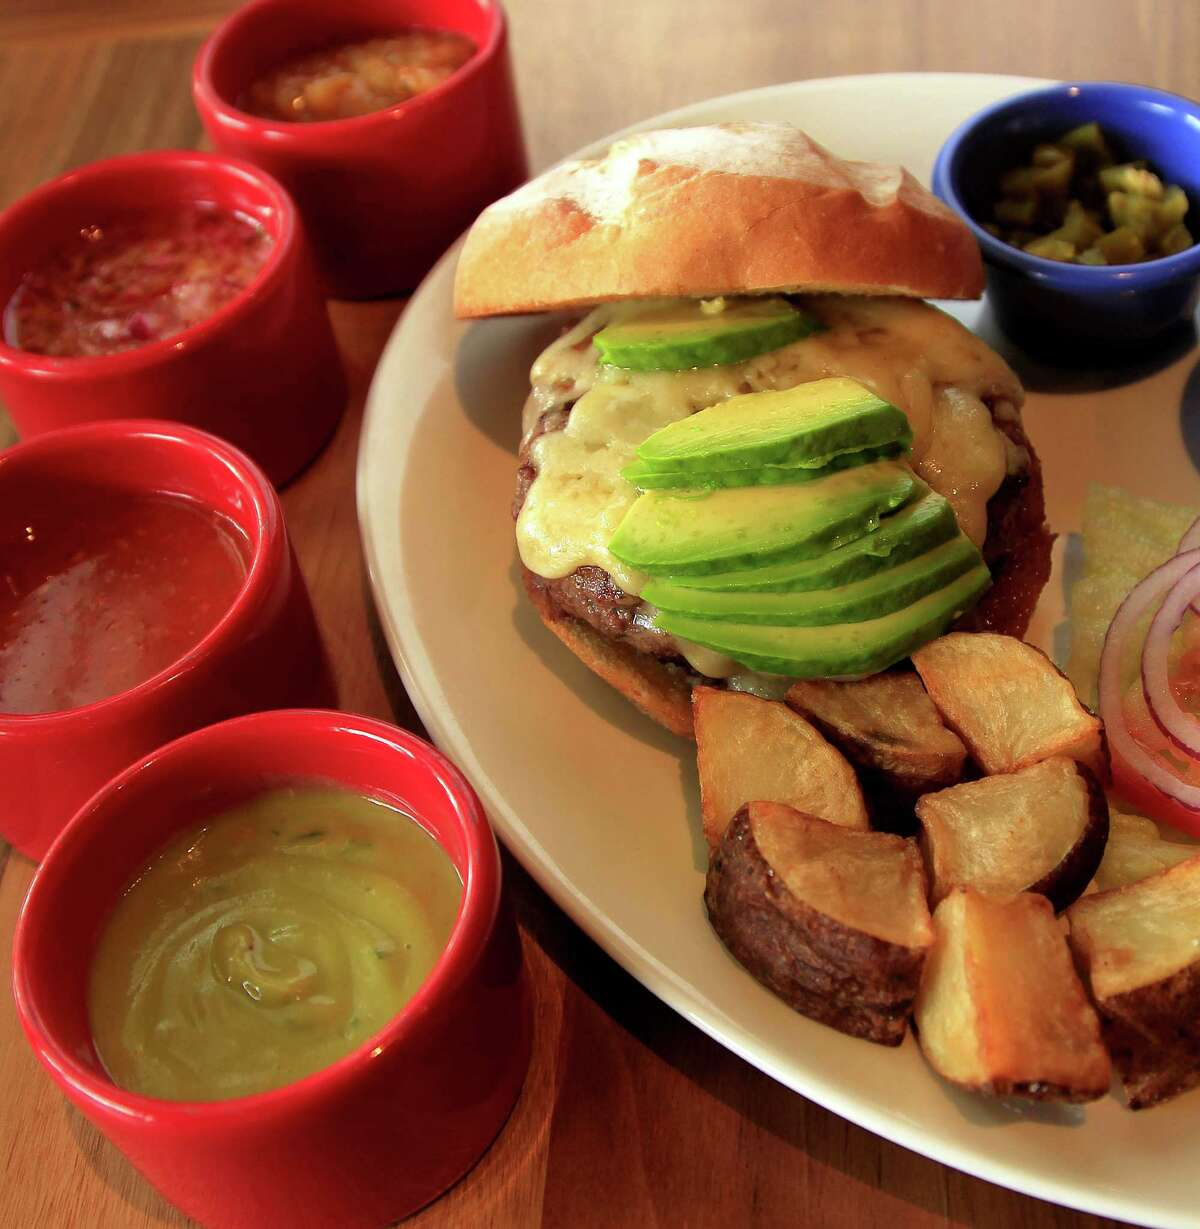 The signature steak burger at La Casa del Caballo, the Mexican steakhouse on lower Westheimer, which features a 10-ounce patty of sirloin and is topped with avocado and Chihuahua cheese. Veggies are optional. It also comes with four different salsas of varying degrees of heat. Photographed, Tuesday, April 22, 2014, in Houston. ( Karen Warren / Houston Chronicle )